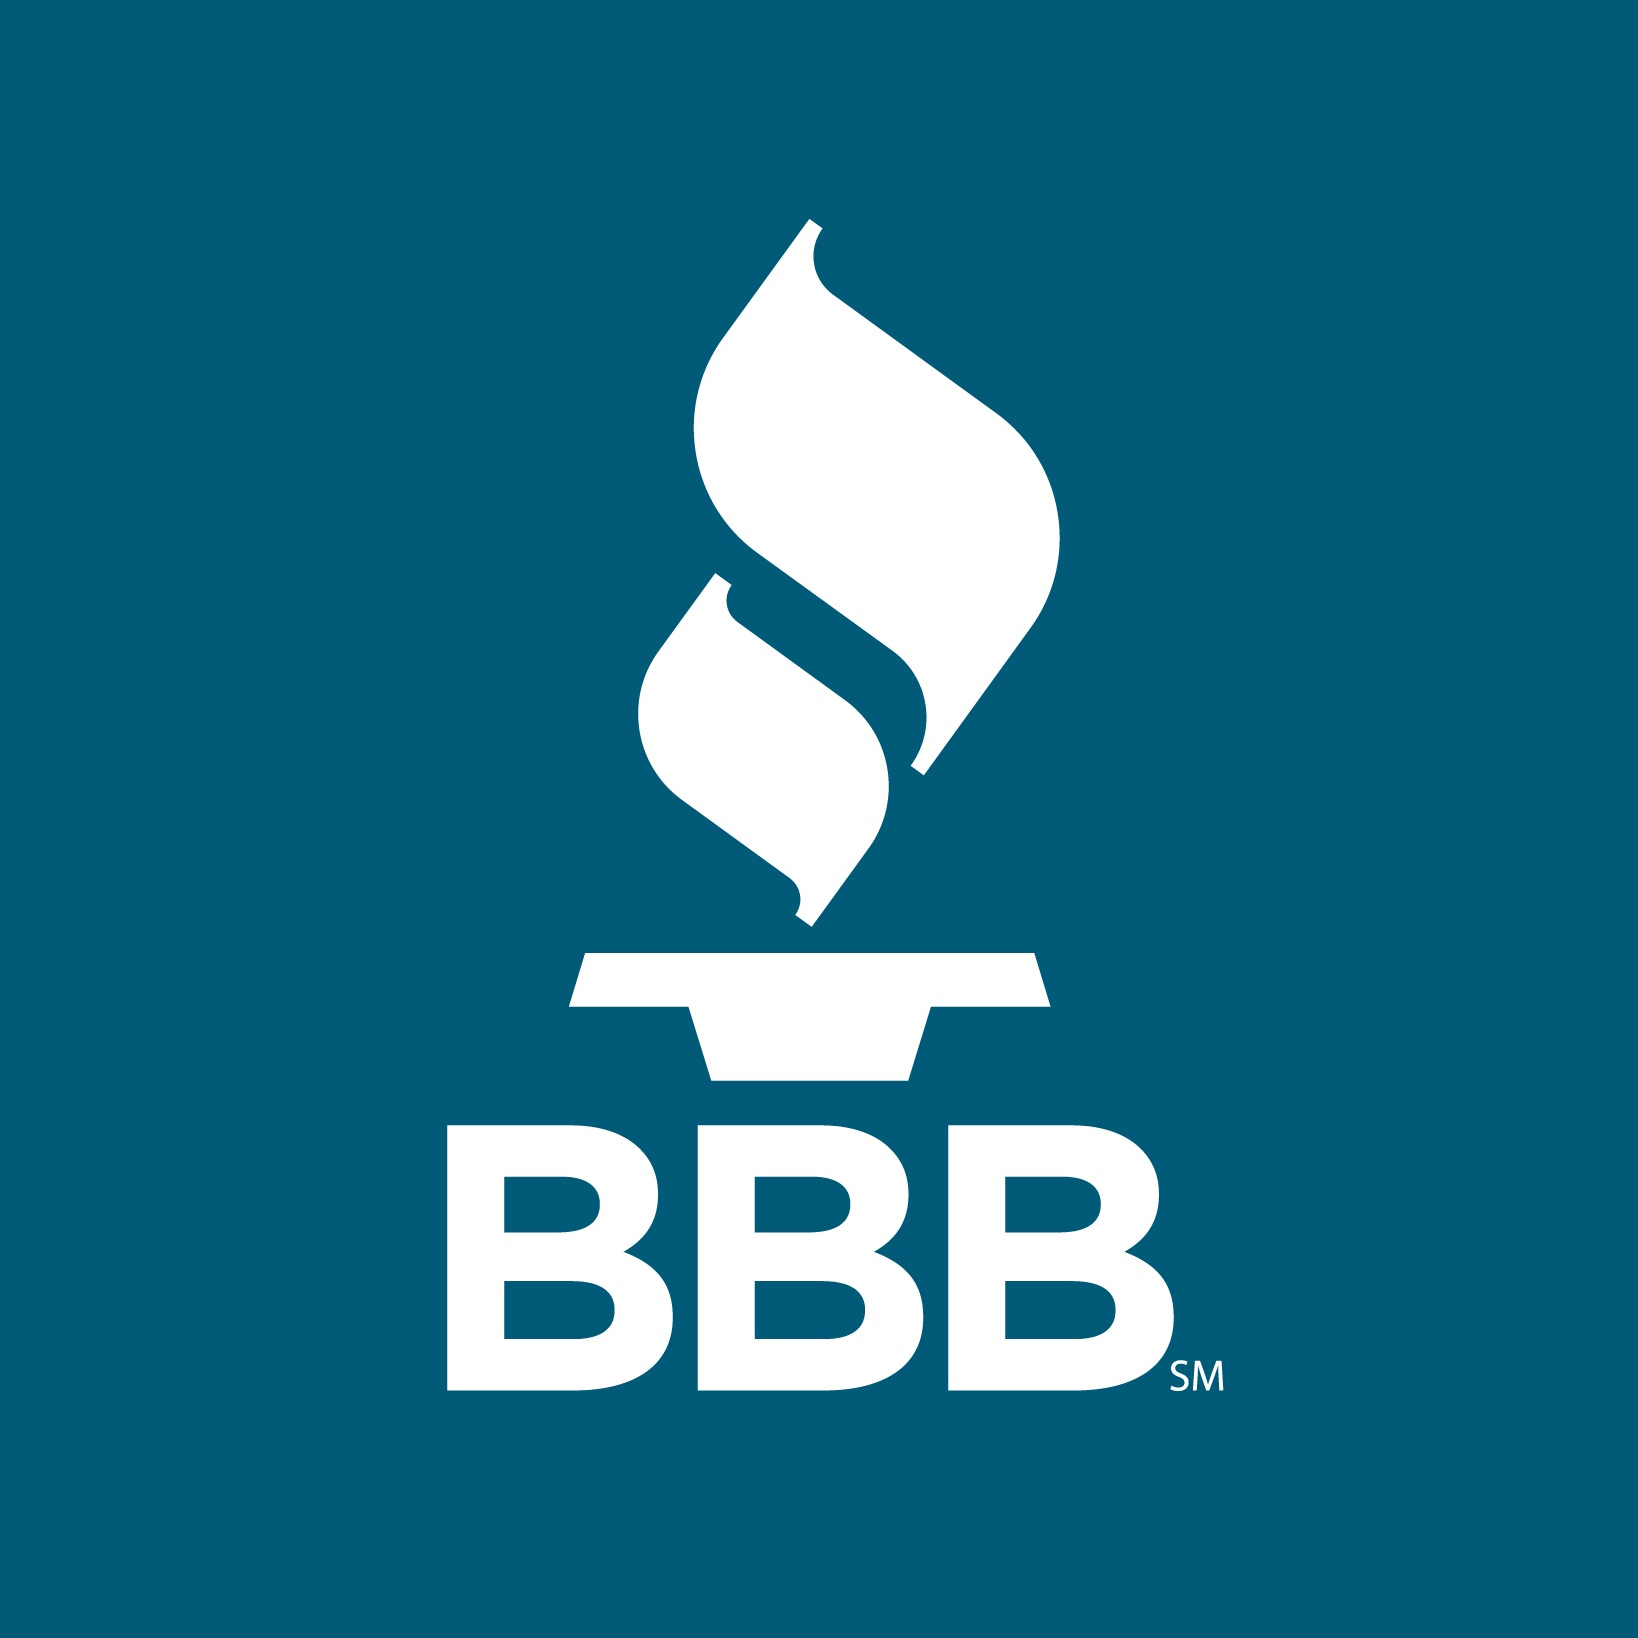 BBB Customer Review